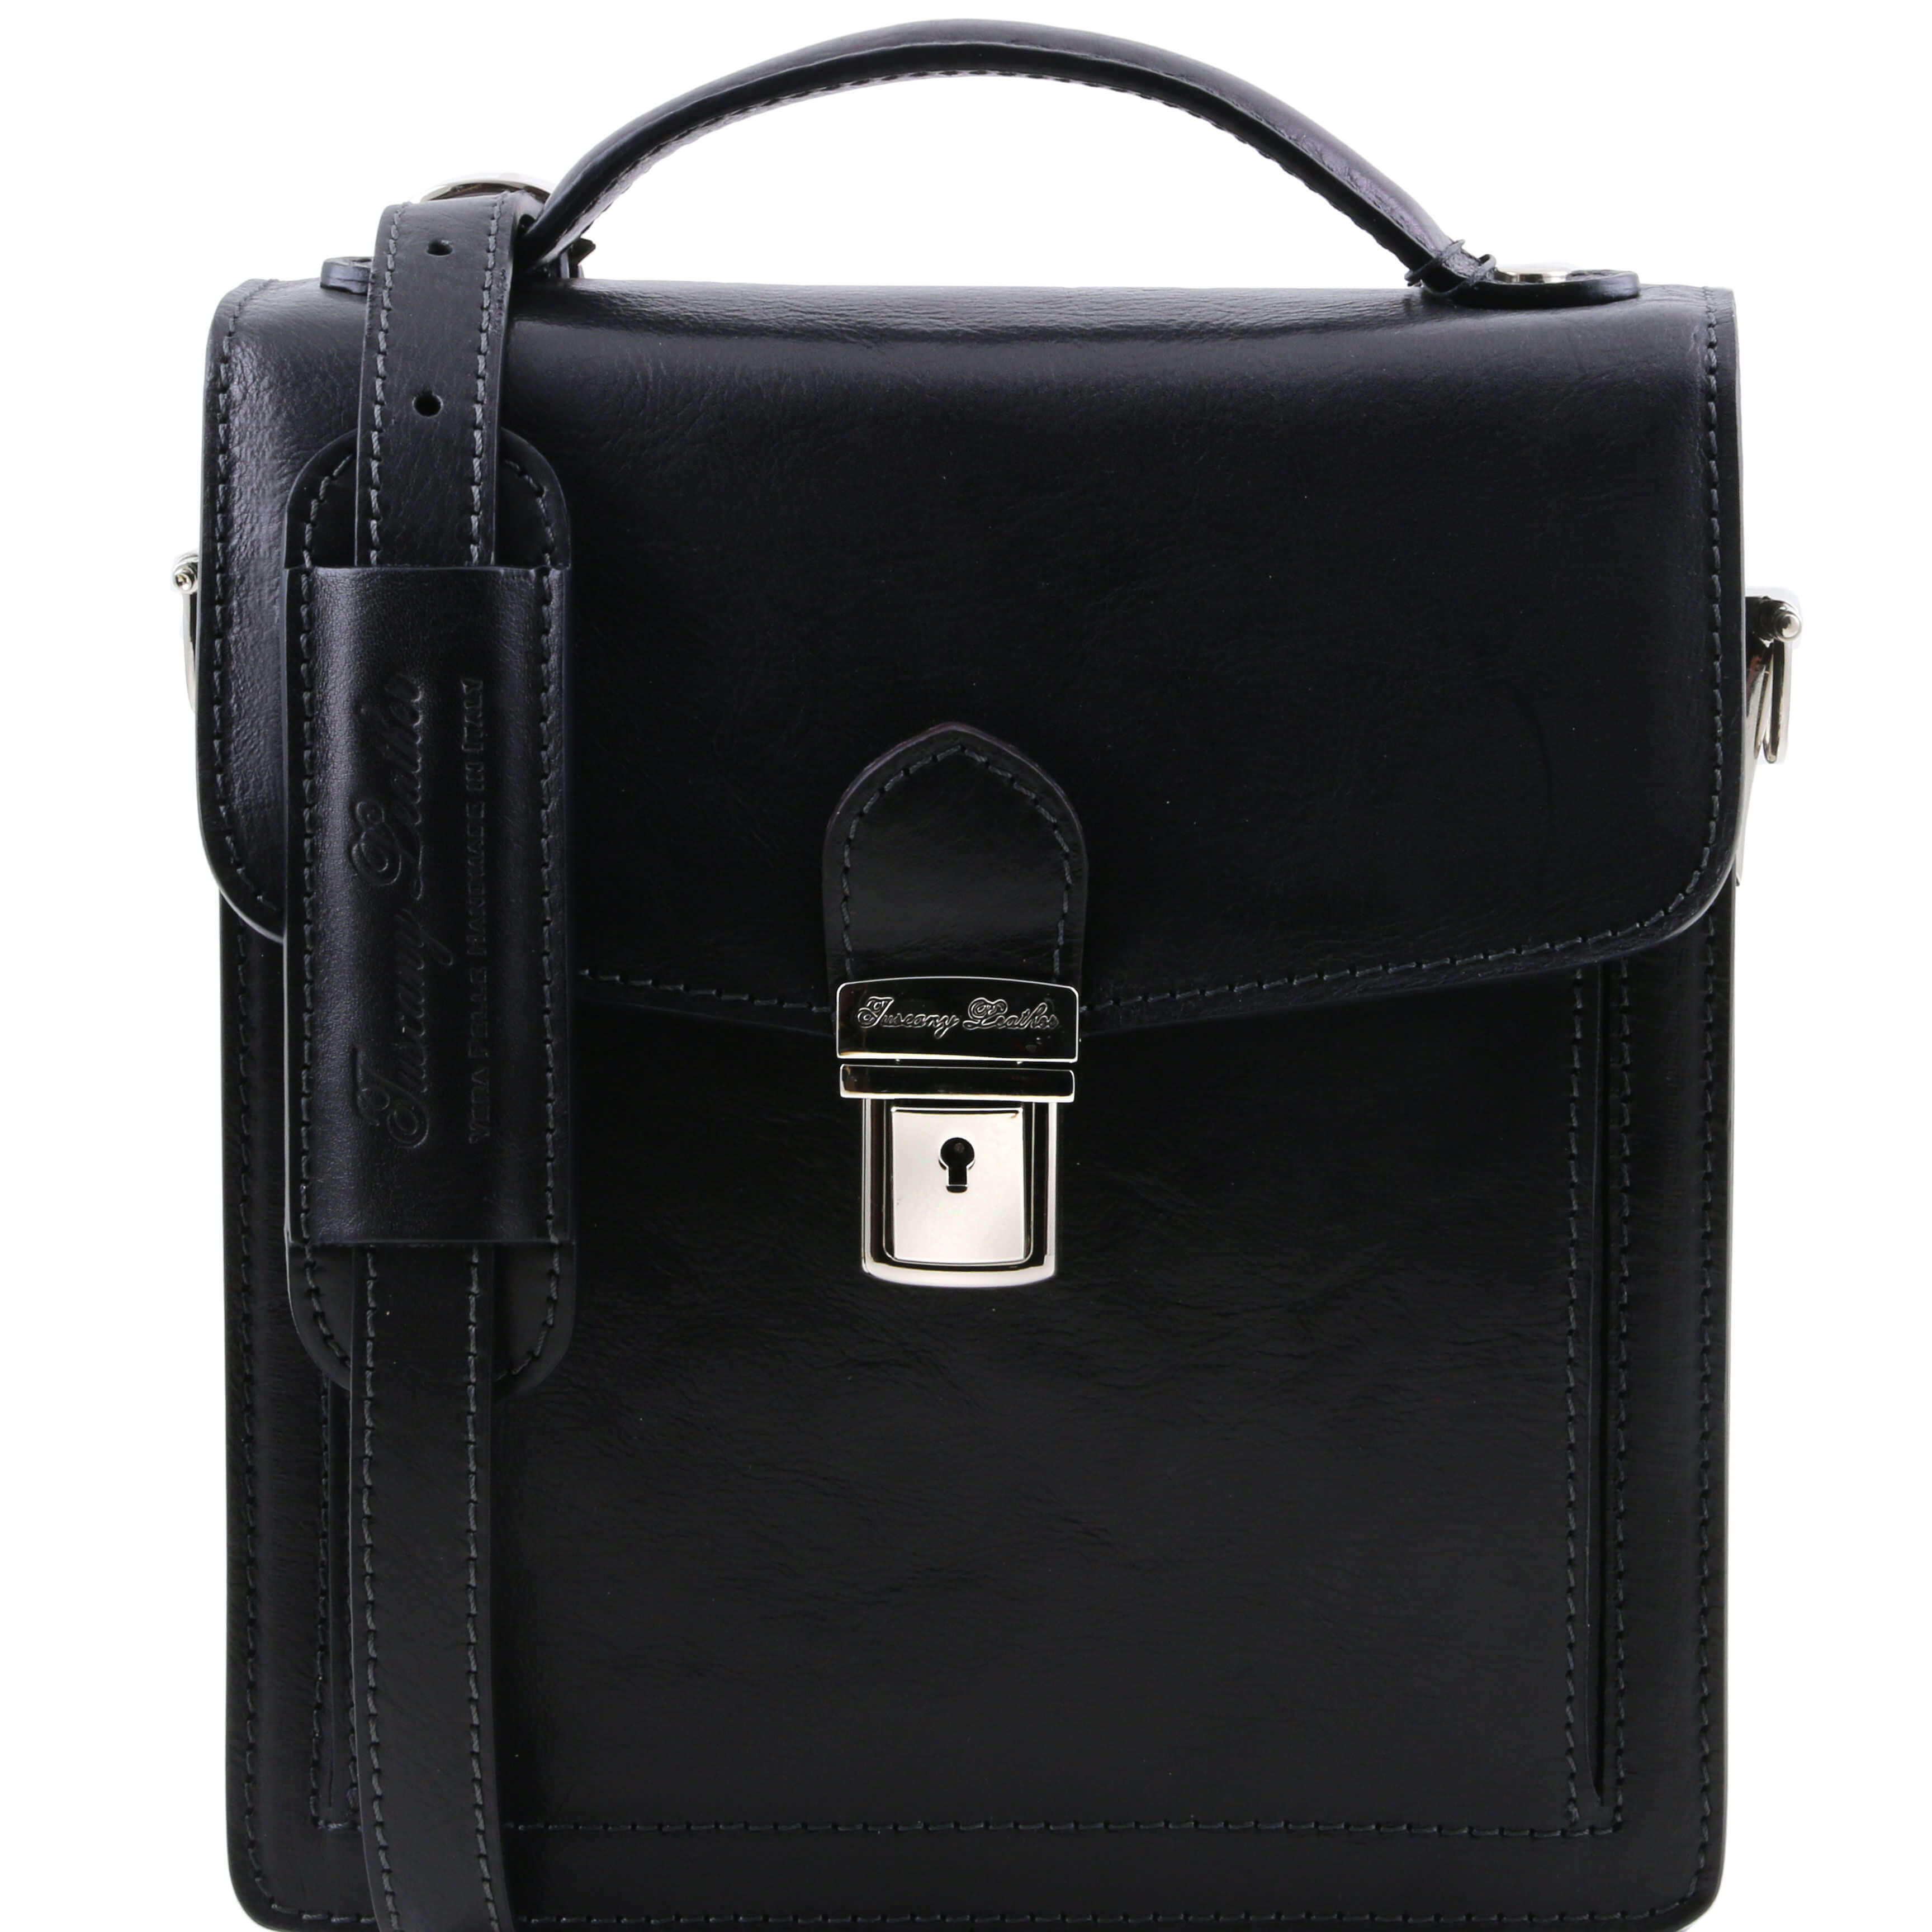 TL141425 New David Mens Shoulder-Saddle-Clutch-Man Bag 4 Colours+Shoulder Strap In Black